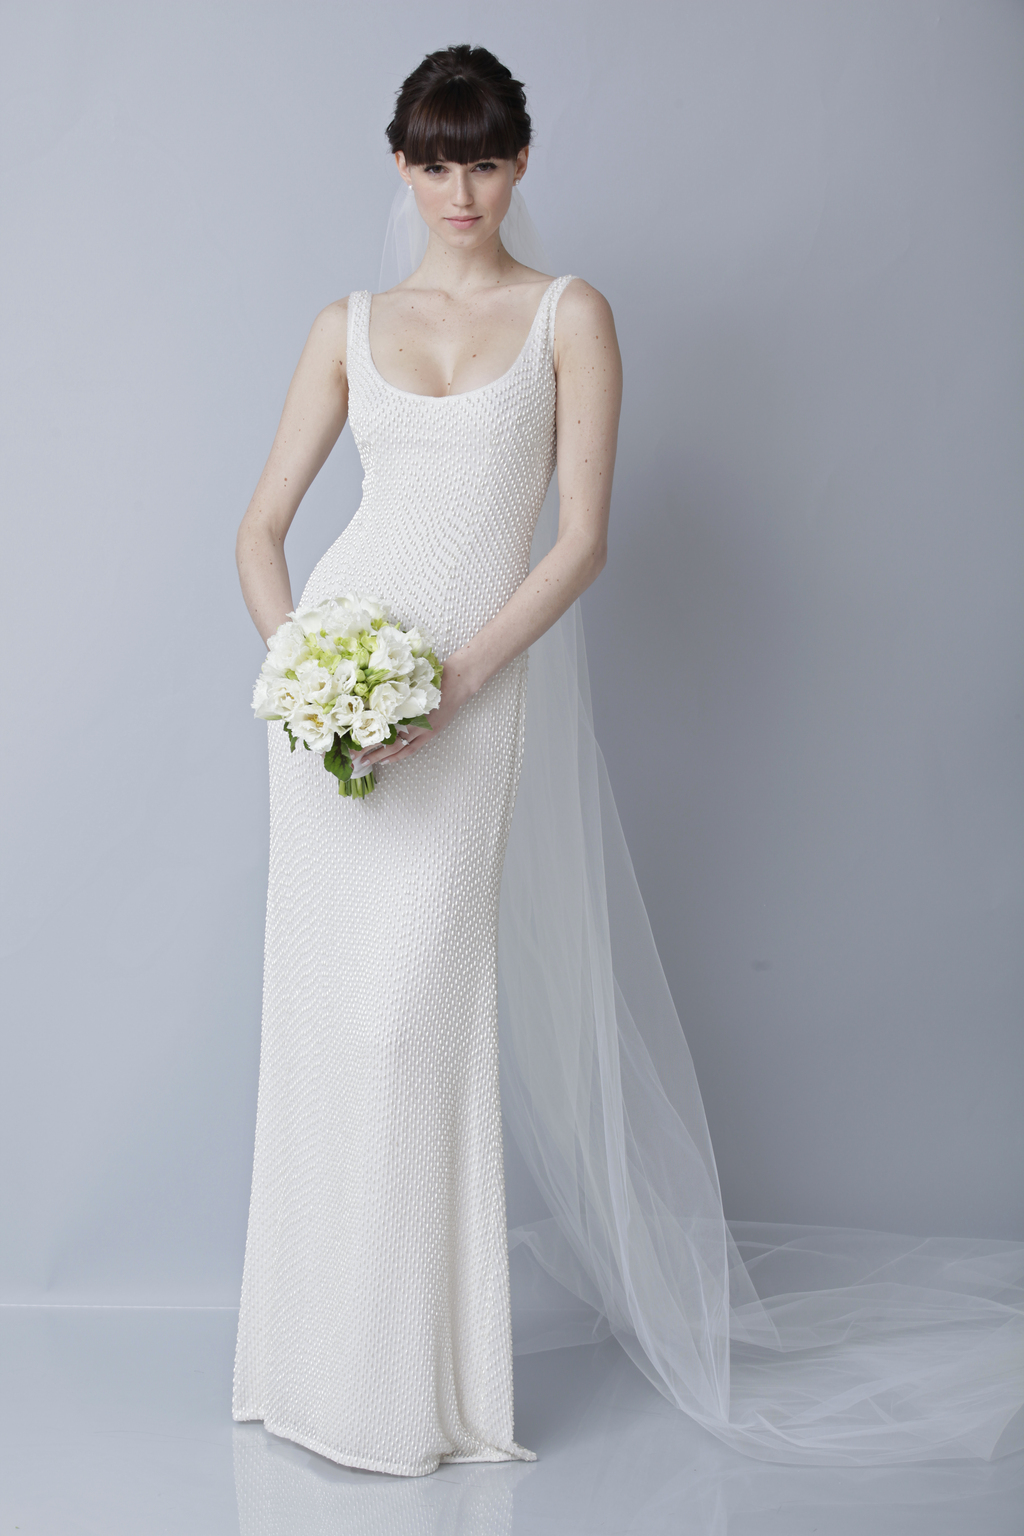 Theia-white-collection-wedding-dress-spring-2013-bridal-gown-890005.full